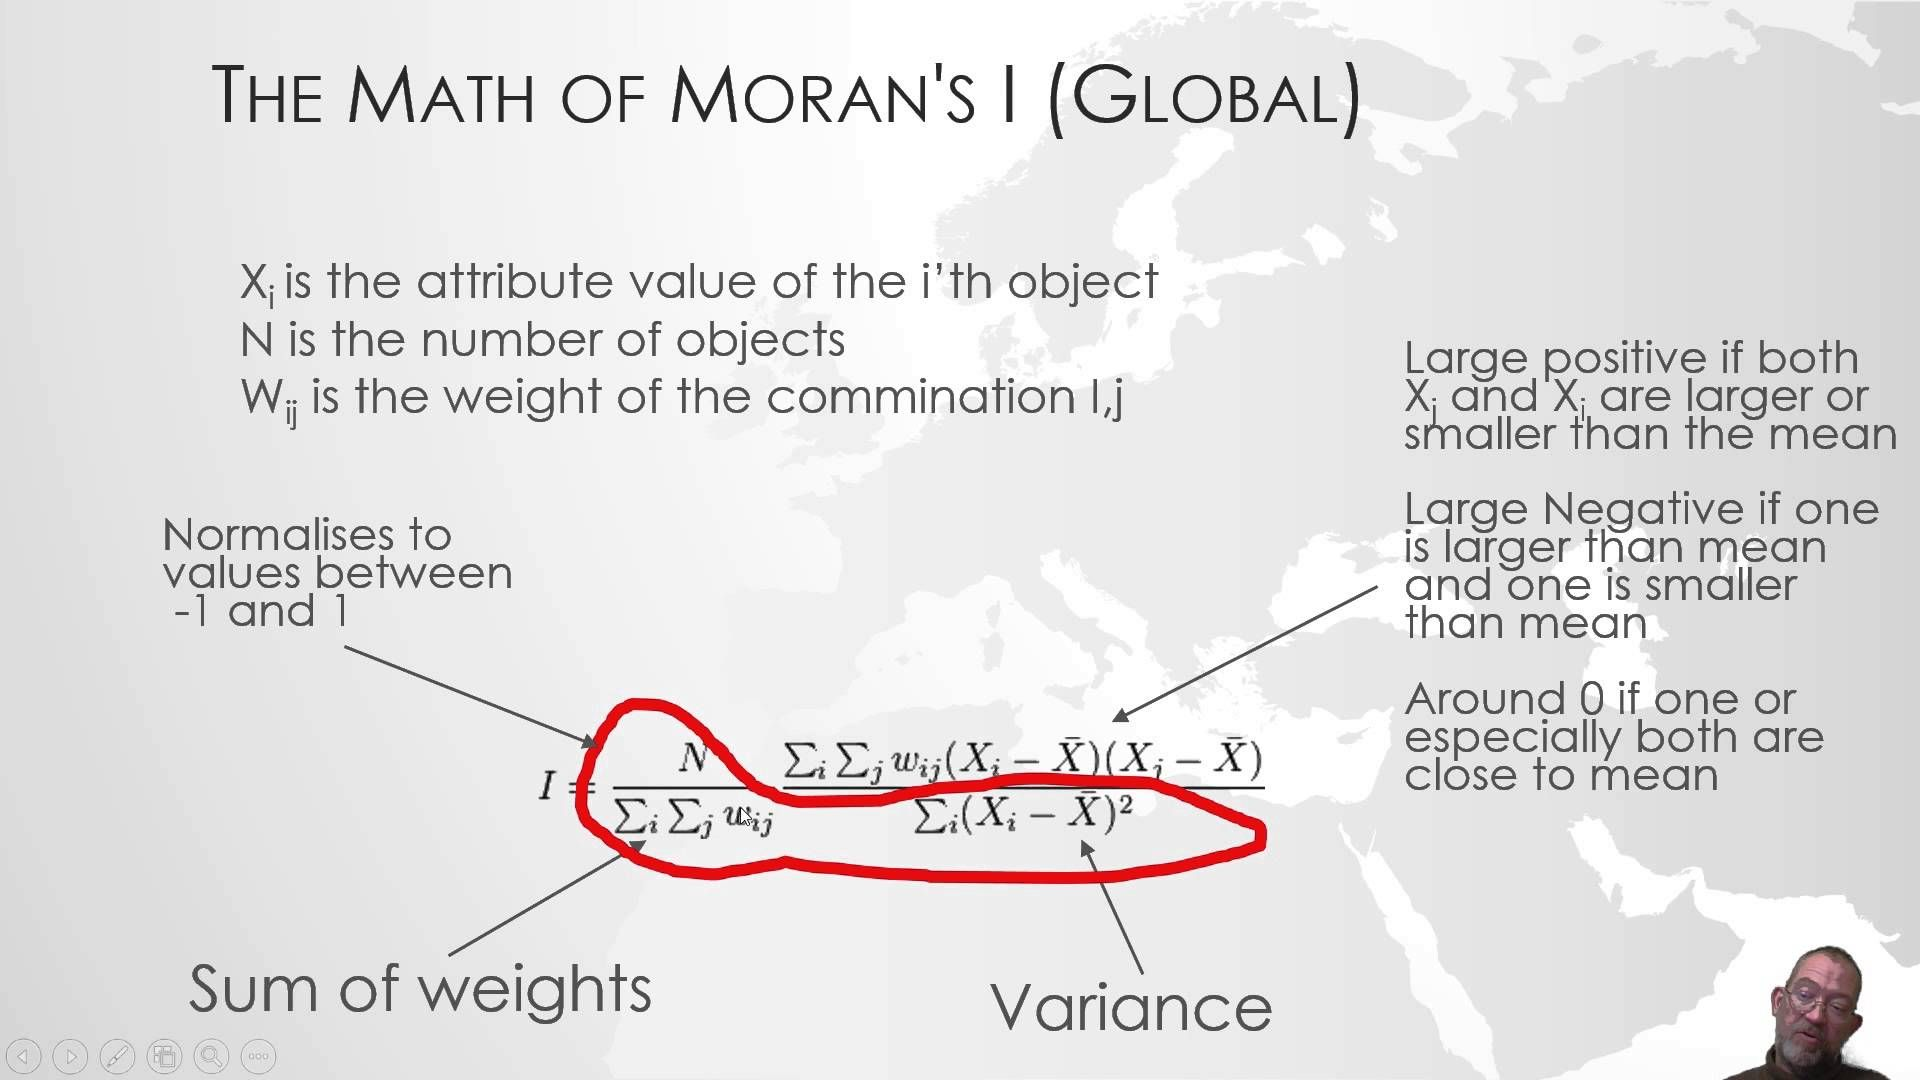 Hot Spot analysis using Morans I and getis-ord statistics in ArcMap